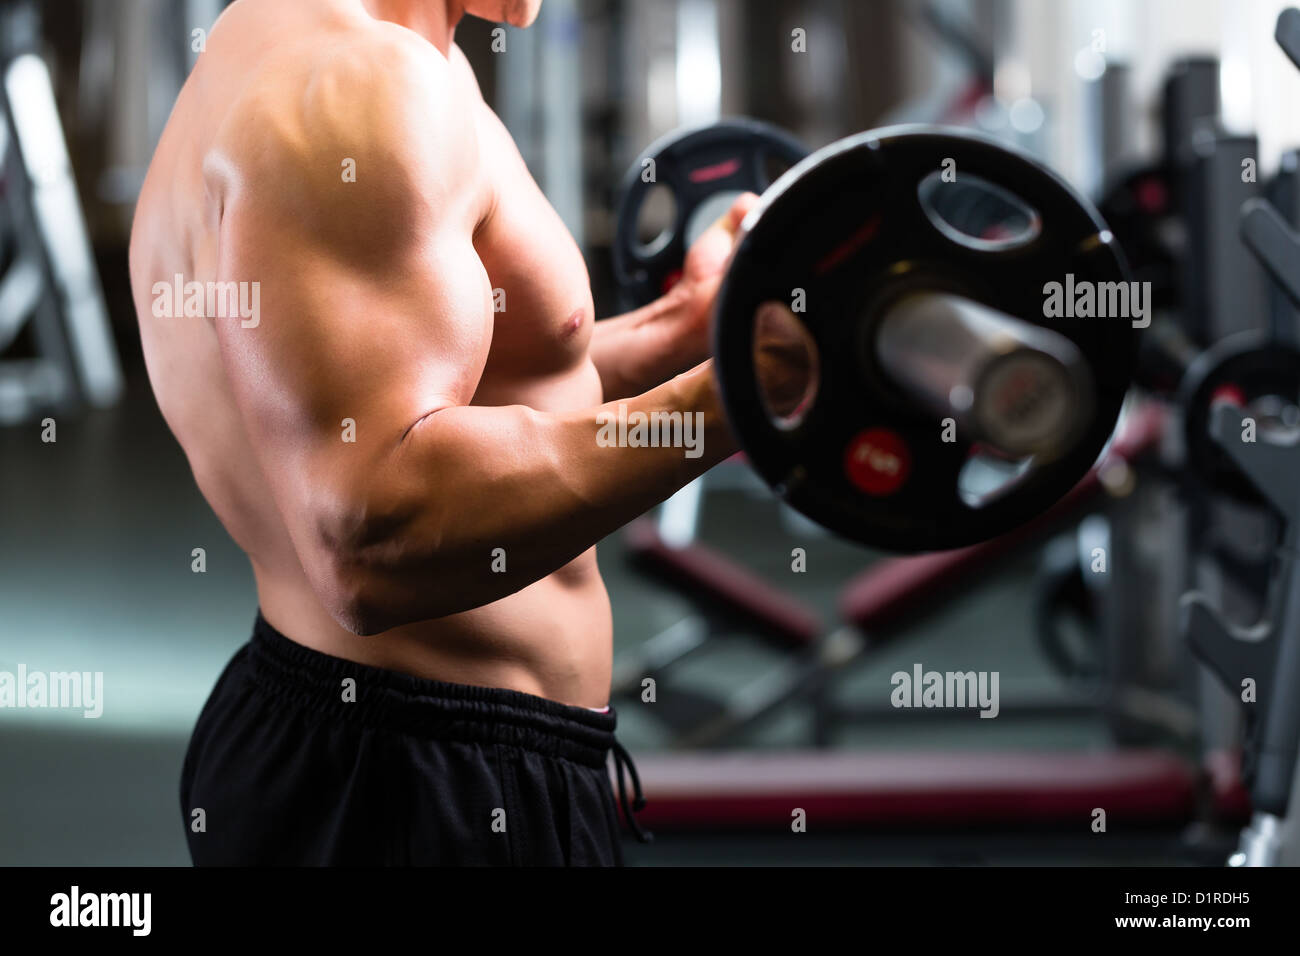 Strong man - bodybuilder with dumbbells in a gym, exercising with a barbell - Stock Image